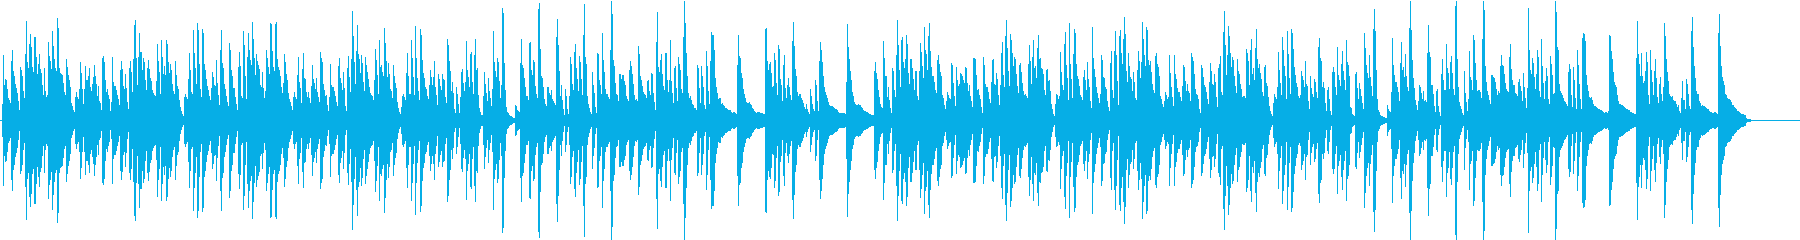 The move of a forest dwarf's reproduced waveform